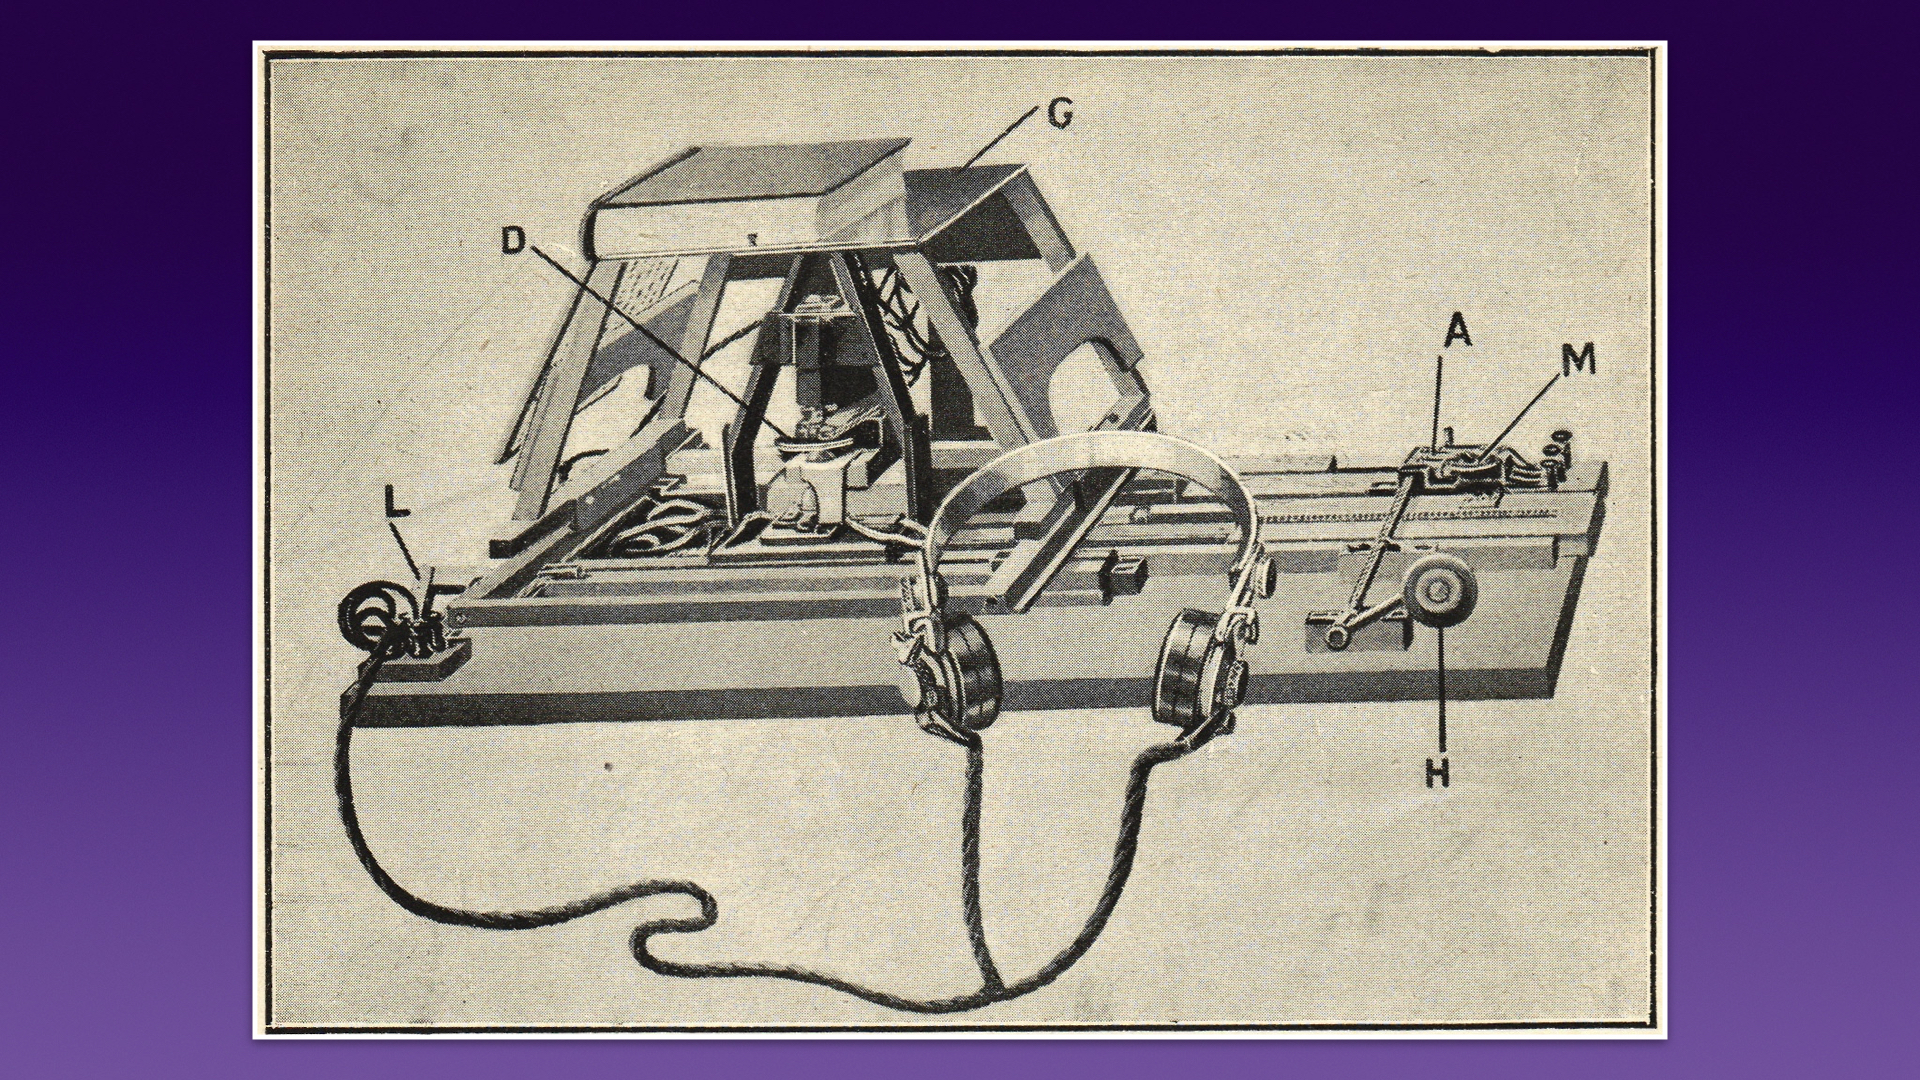 A sepia drawing of a machine with a scanning frame and a pair of headphones on a cord.